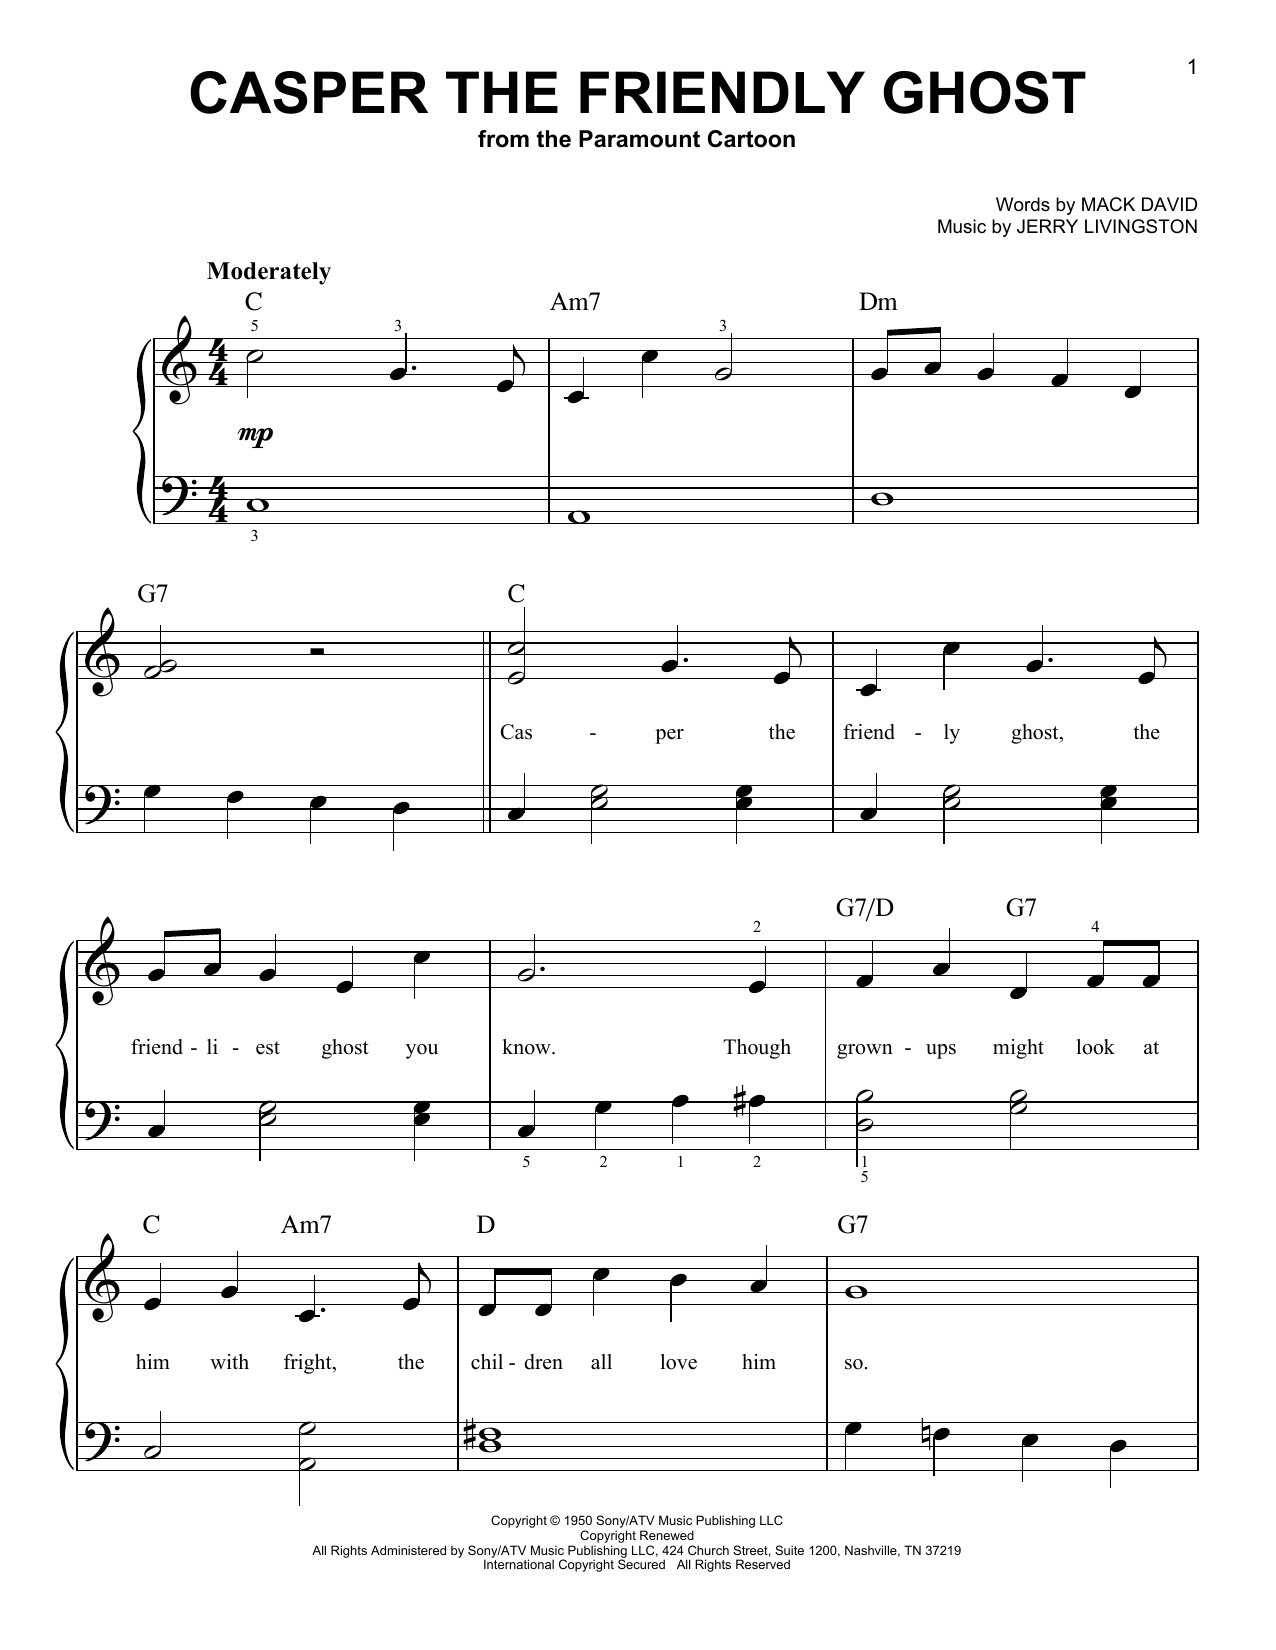 Casper The Friendly Ghost sheet music for piano solo (chords) by Mack David